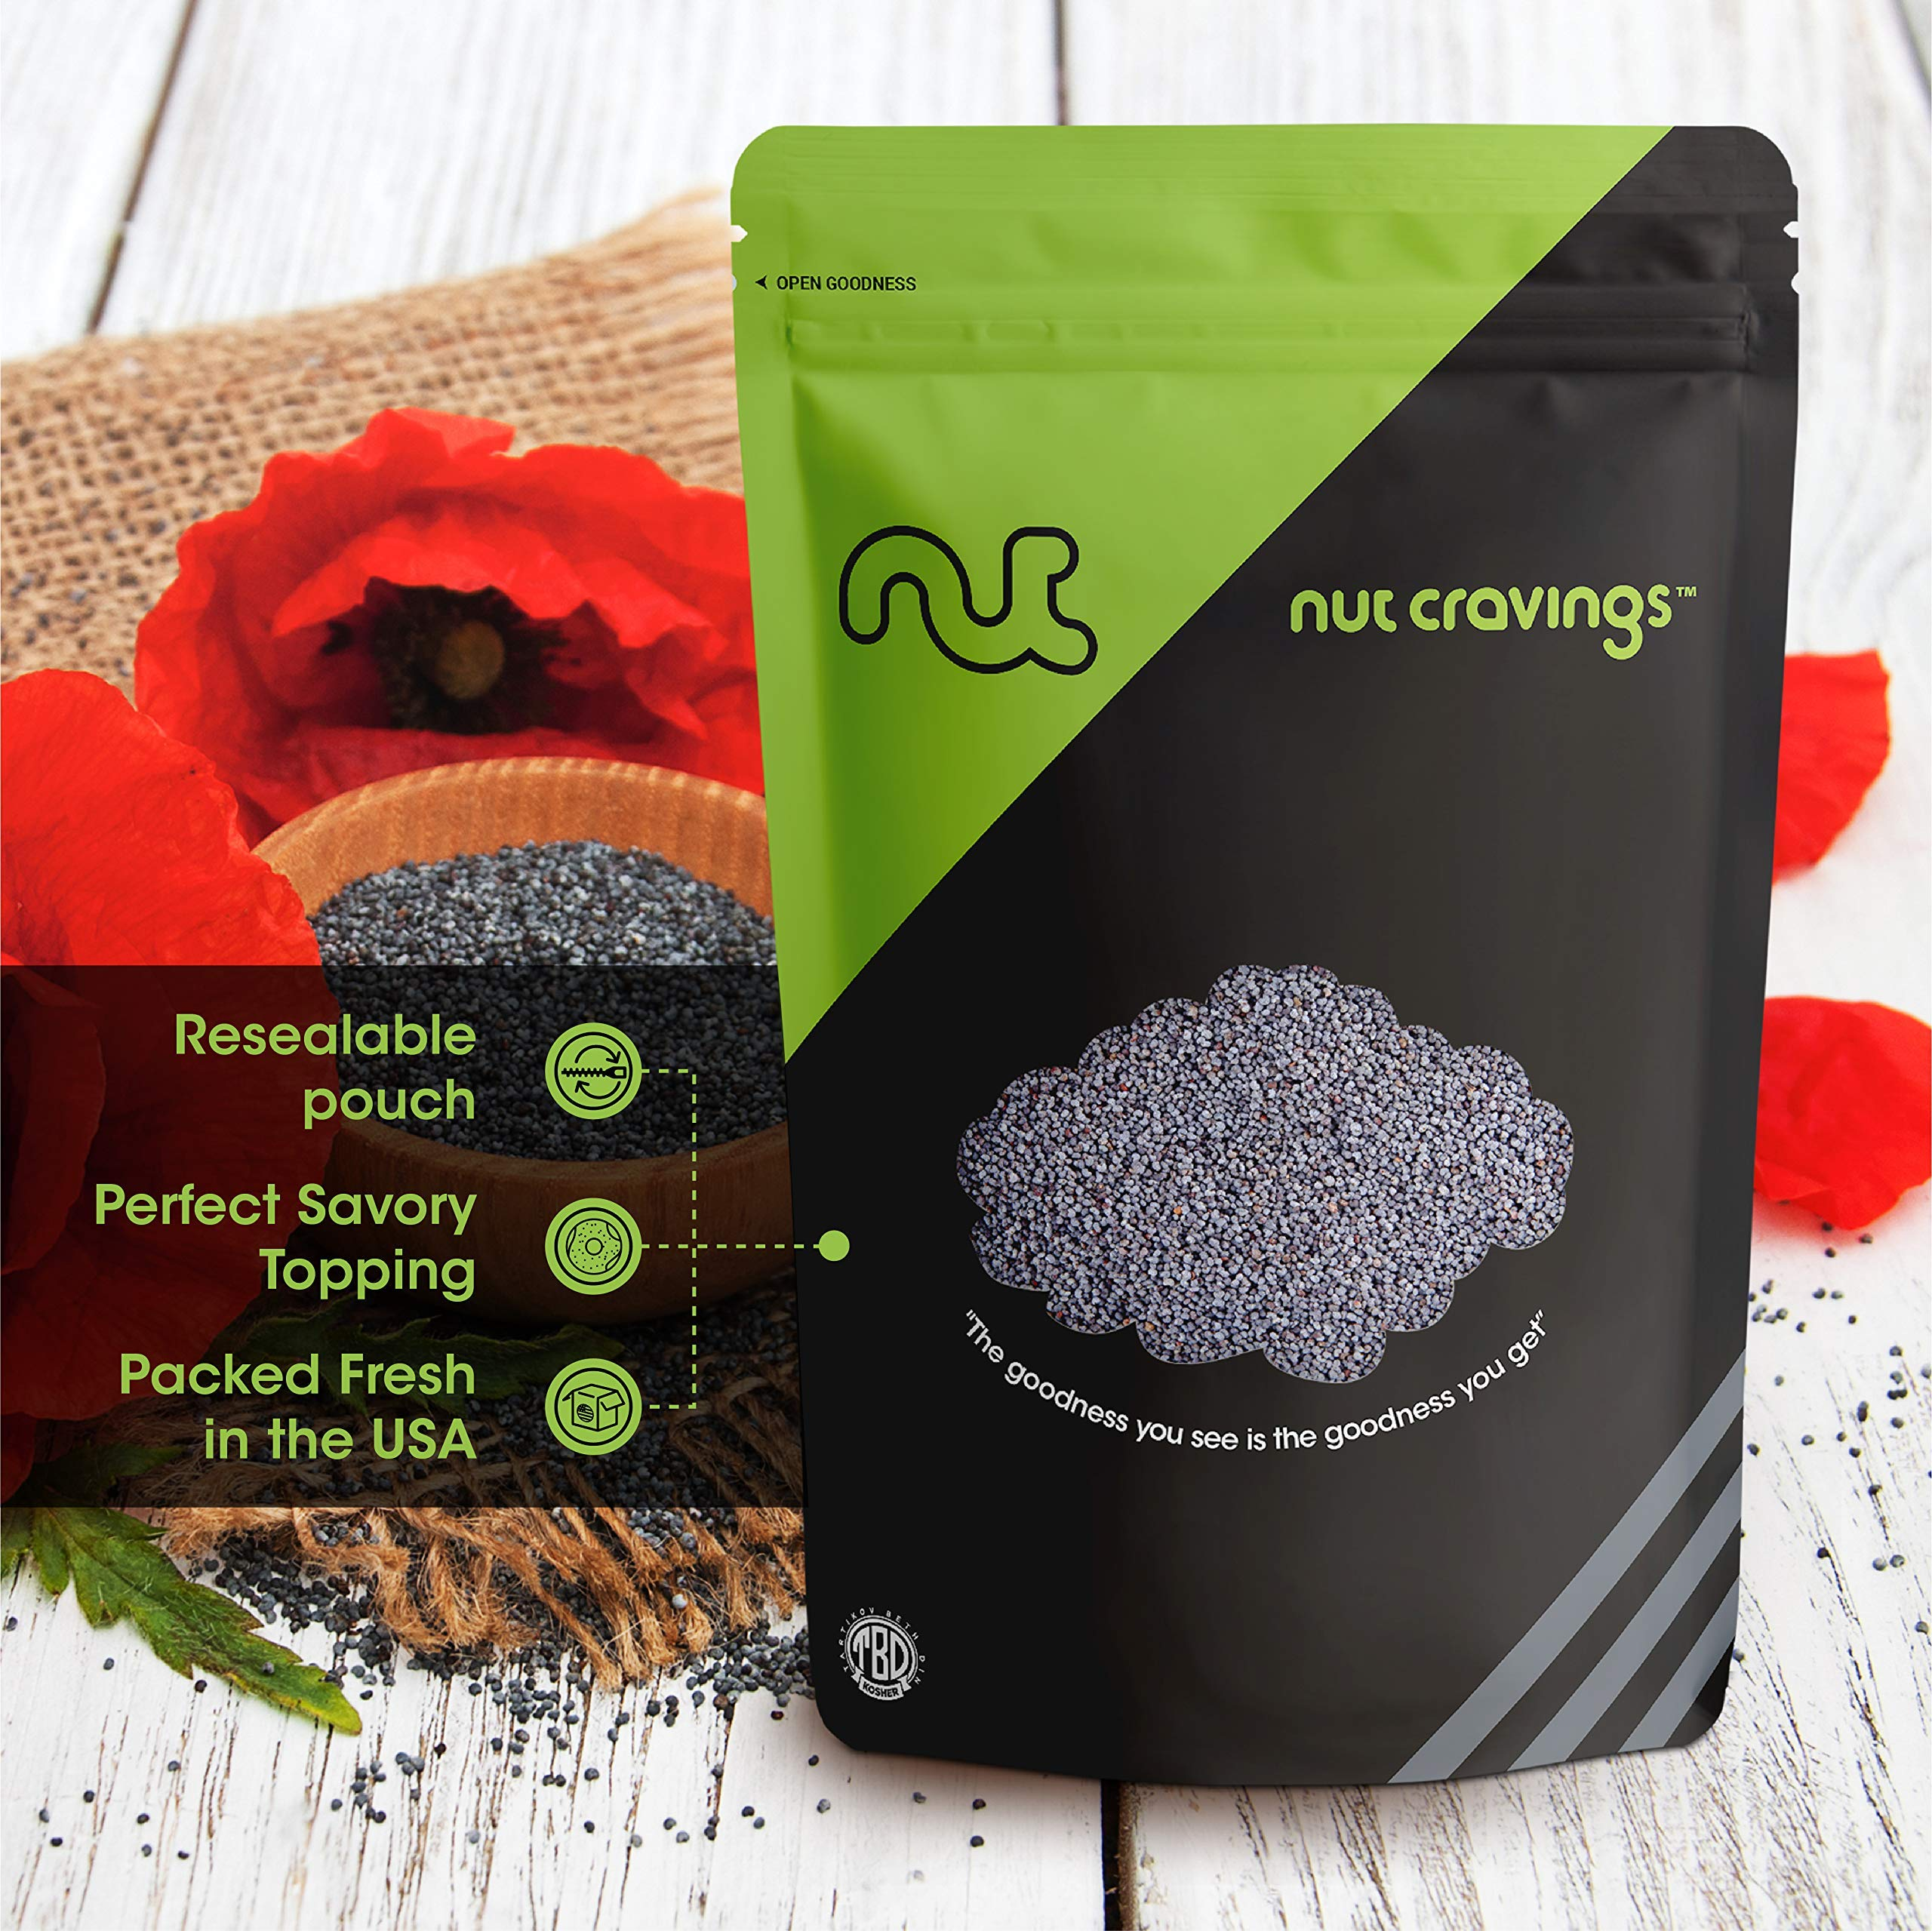 Nut Cravings - Whole Blue England Poppy Seeds (1 Pound) - Country of Origin United Kingdom - 16 Ounce by Nut Cravings (Image #6)